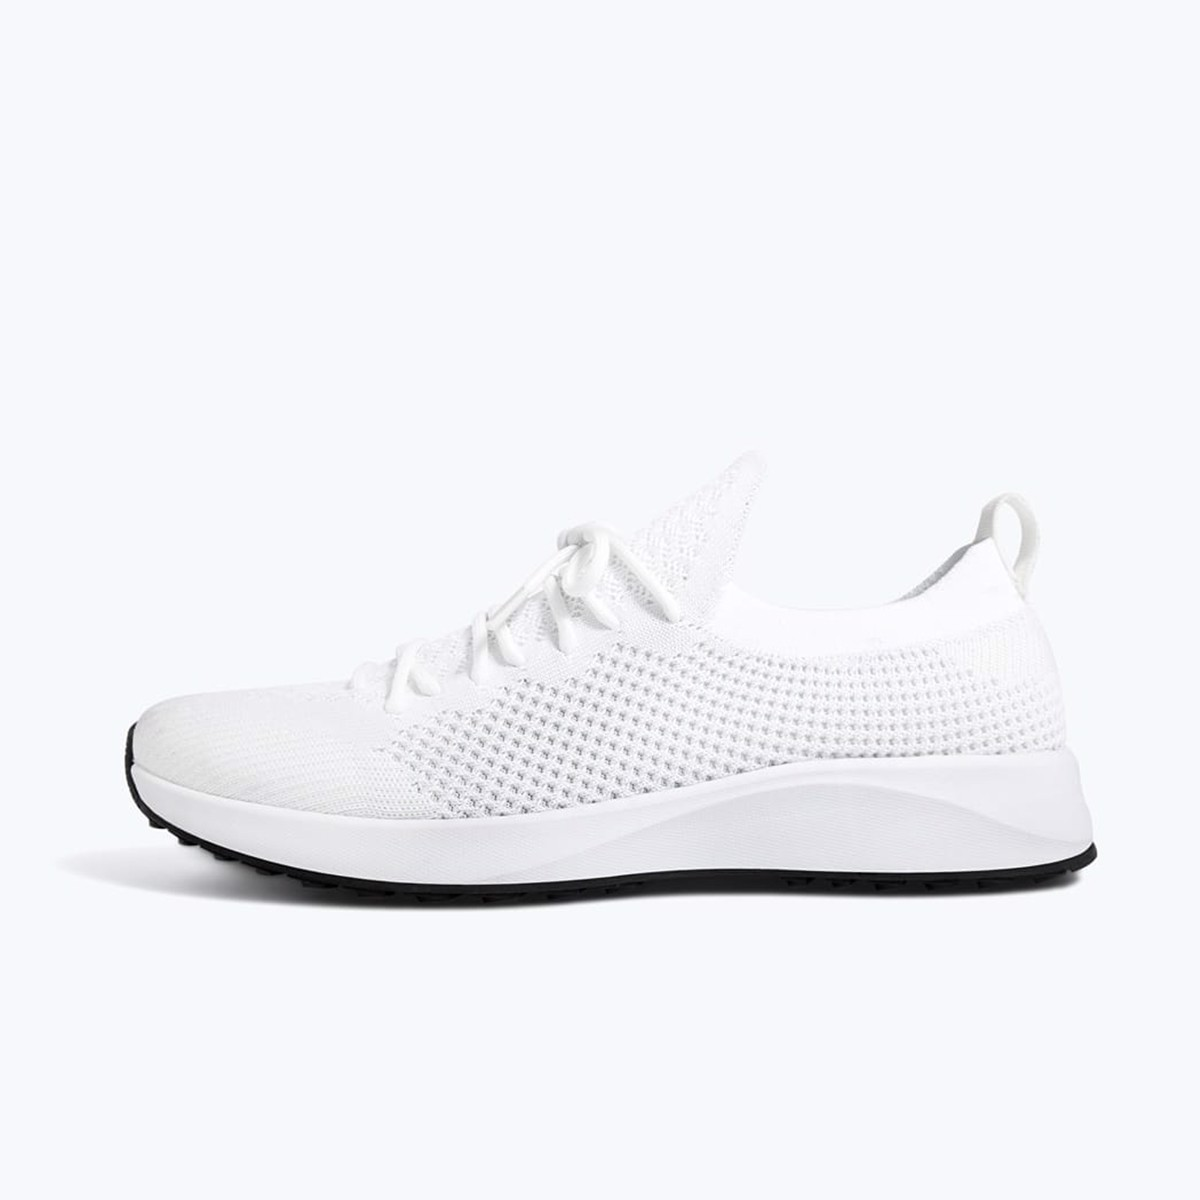 Giày native ad mercury 2.0 liteknit (21106919) shell white/ shell white /jiffy rubber